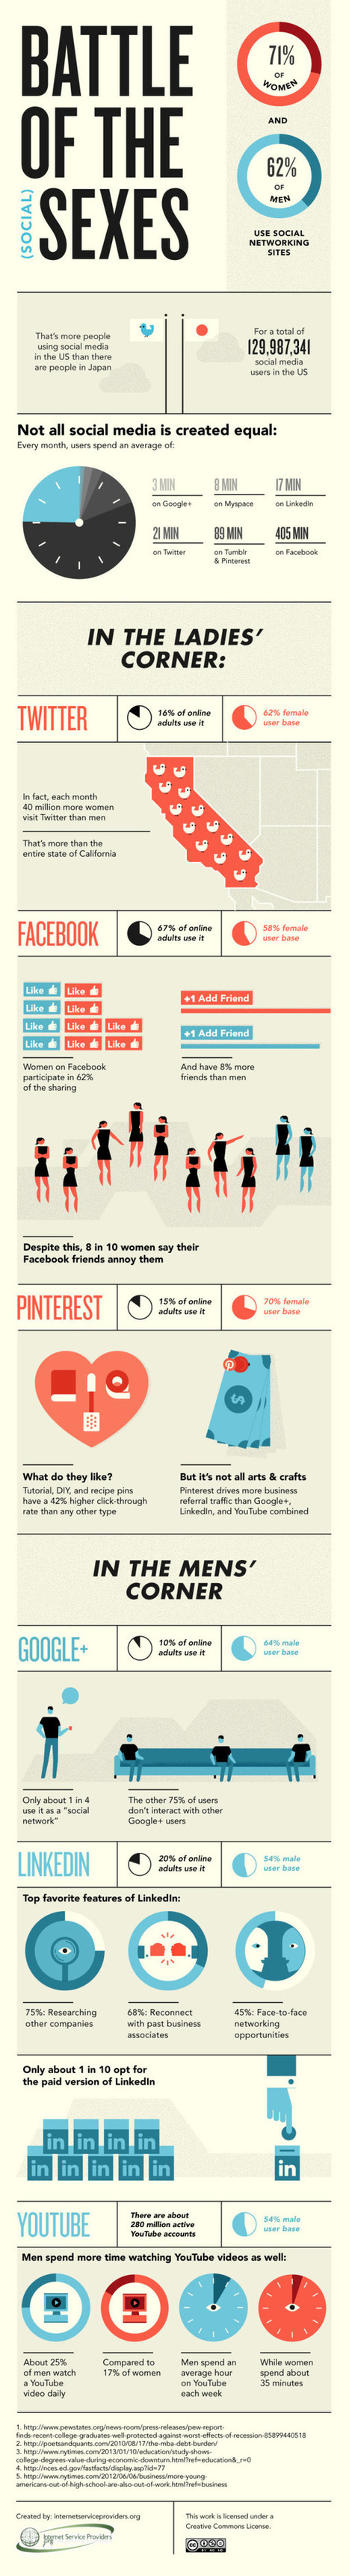 Battle of the (Social) Sexes - Blog About Infographics and Data ... | data visualisation | Scoop.it